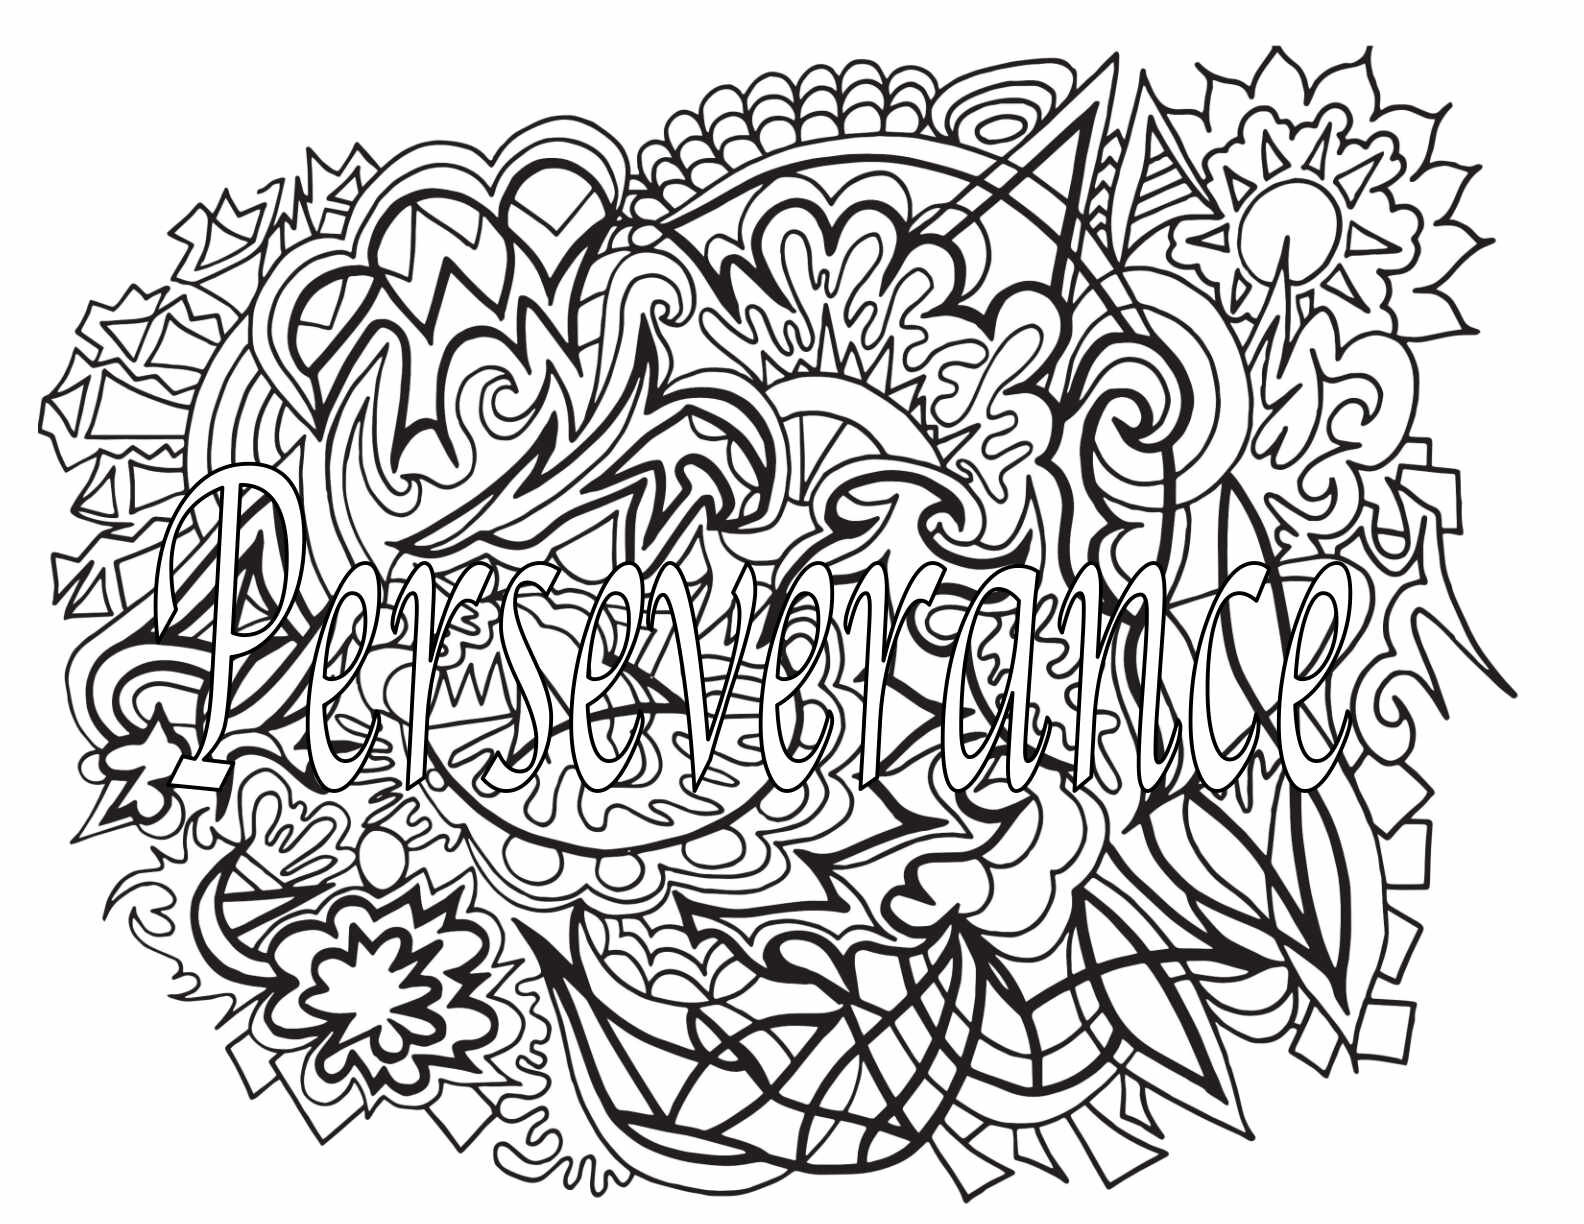 Perseverance 2 Free Printable Coloring Pages Stevie Doodles Free Printable Coloring Pages